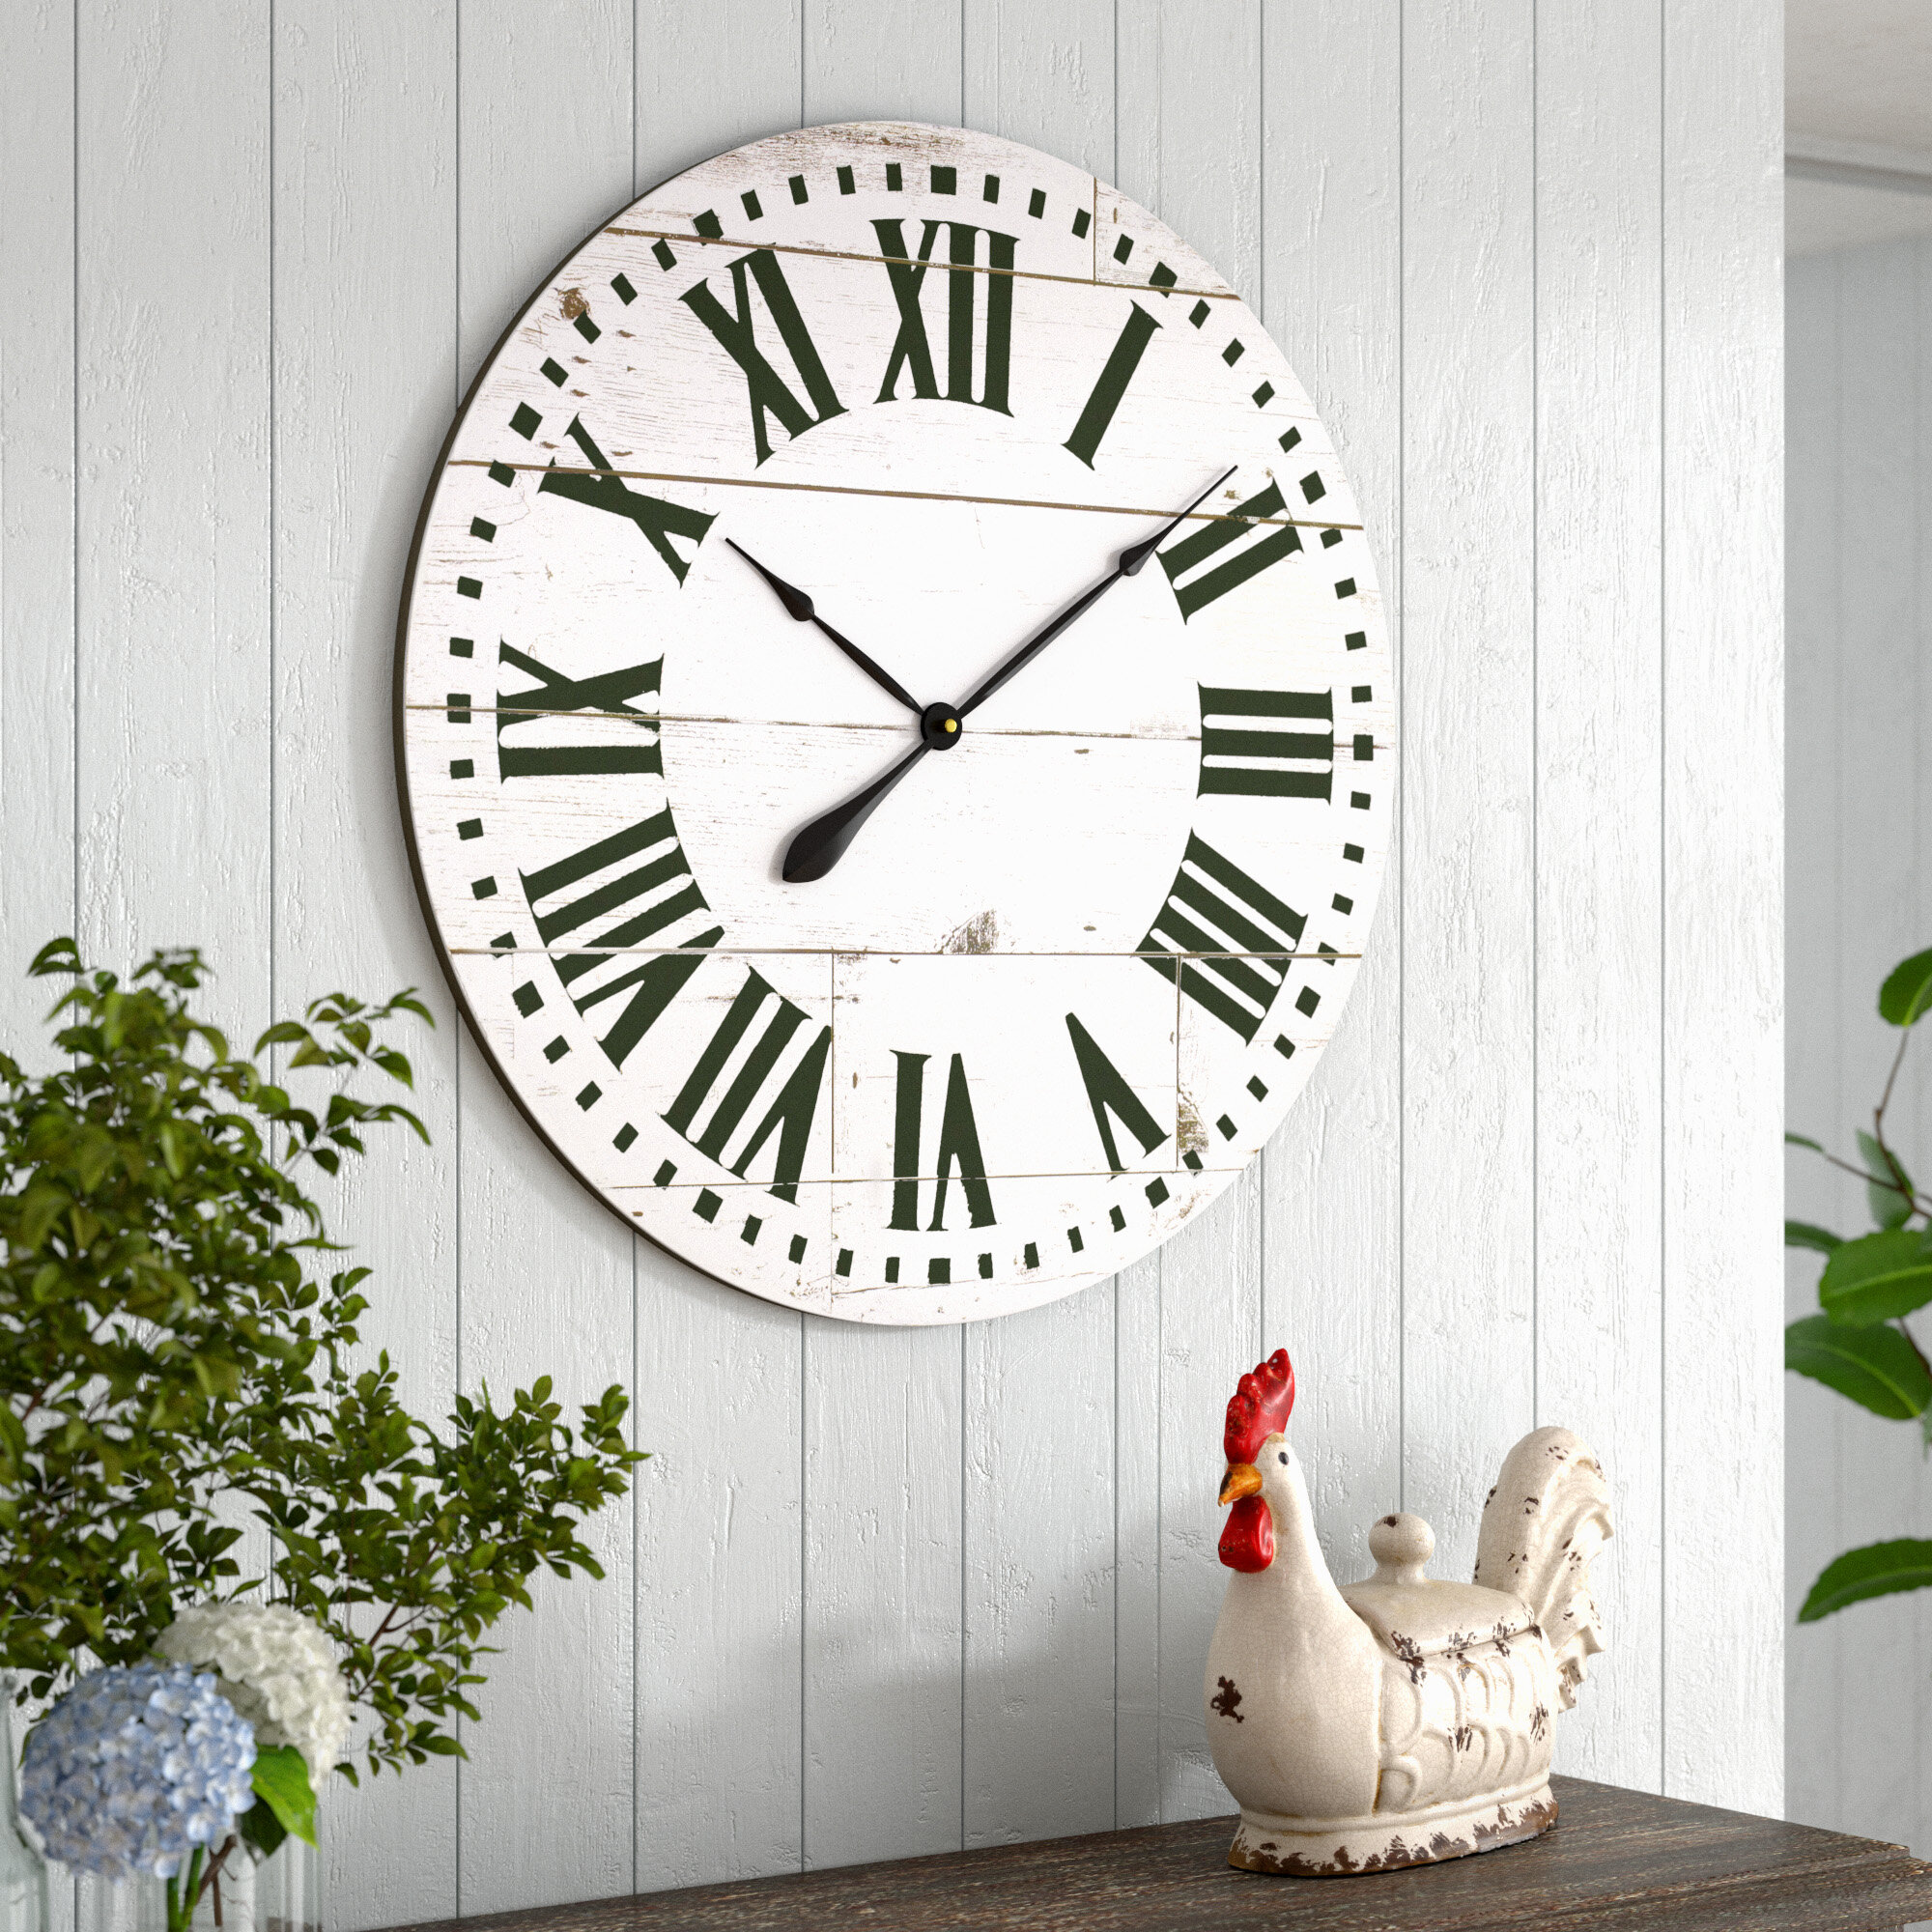 Three Posts Oversized Braylee French Country With Shiplap Face 30 Wall Clock Reviews Wayfair